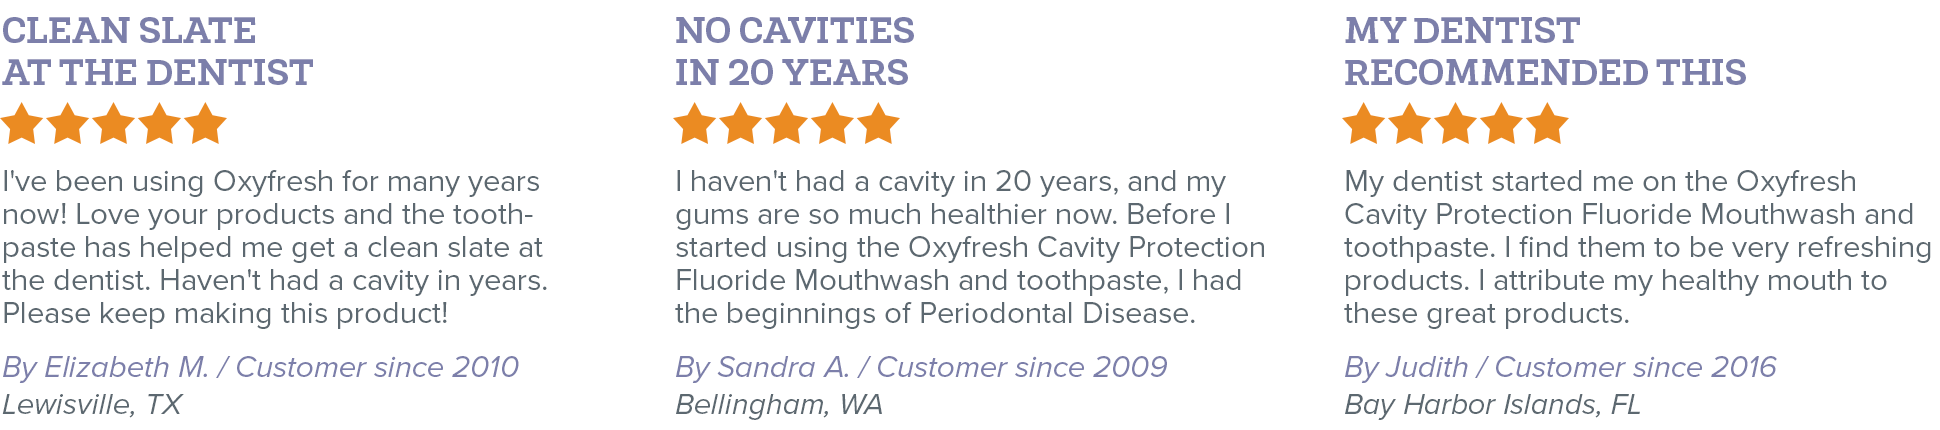 Oxyfresh - Eliminate Bad Breath - Alcohol Free Fluoride Mouthwash Reviews